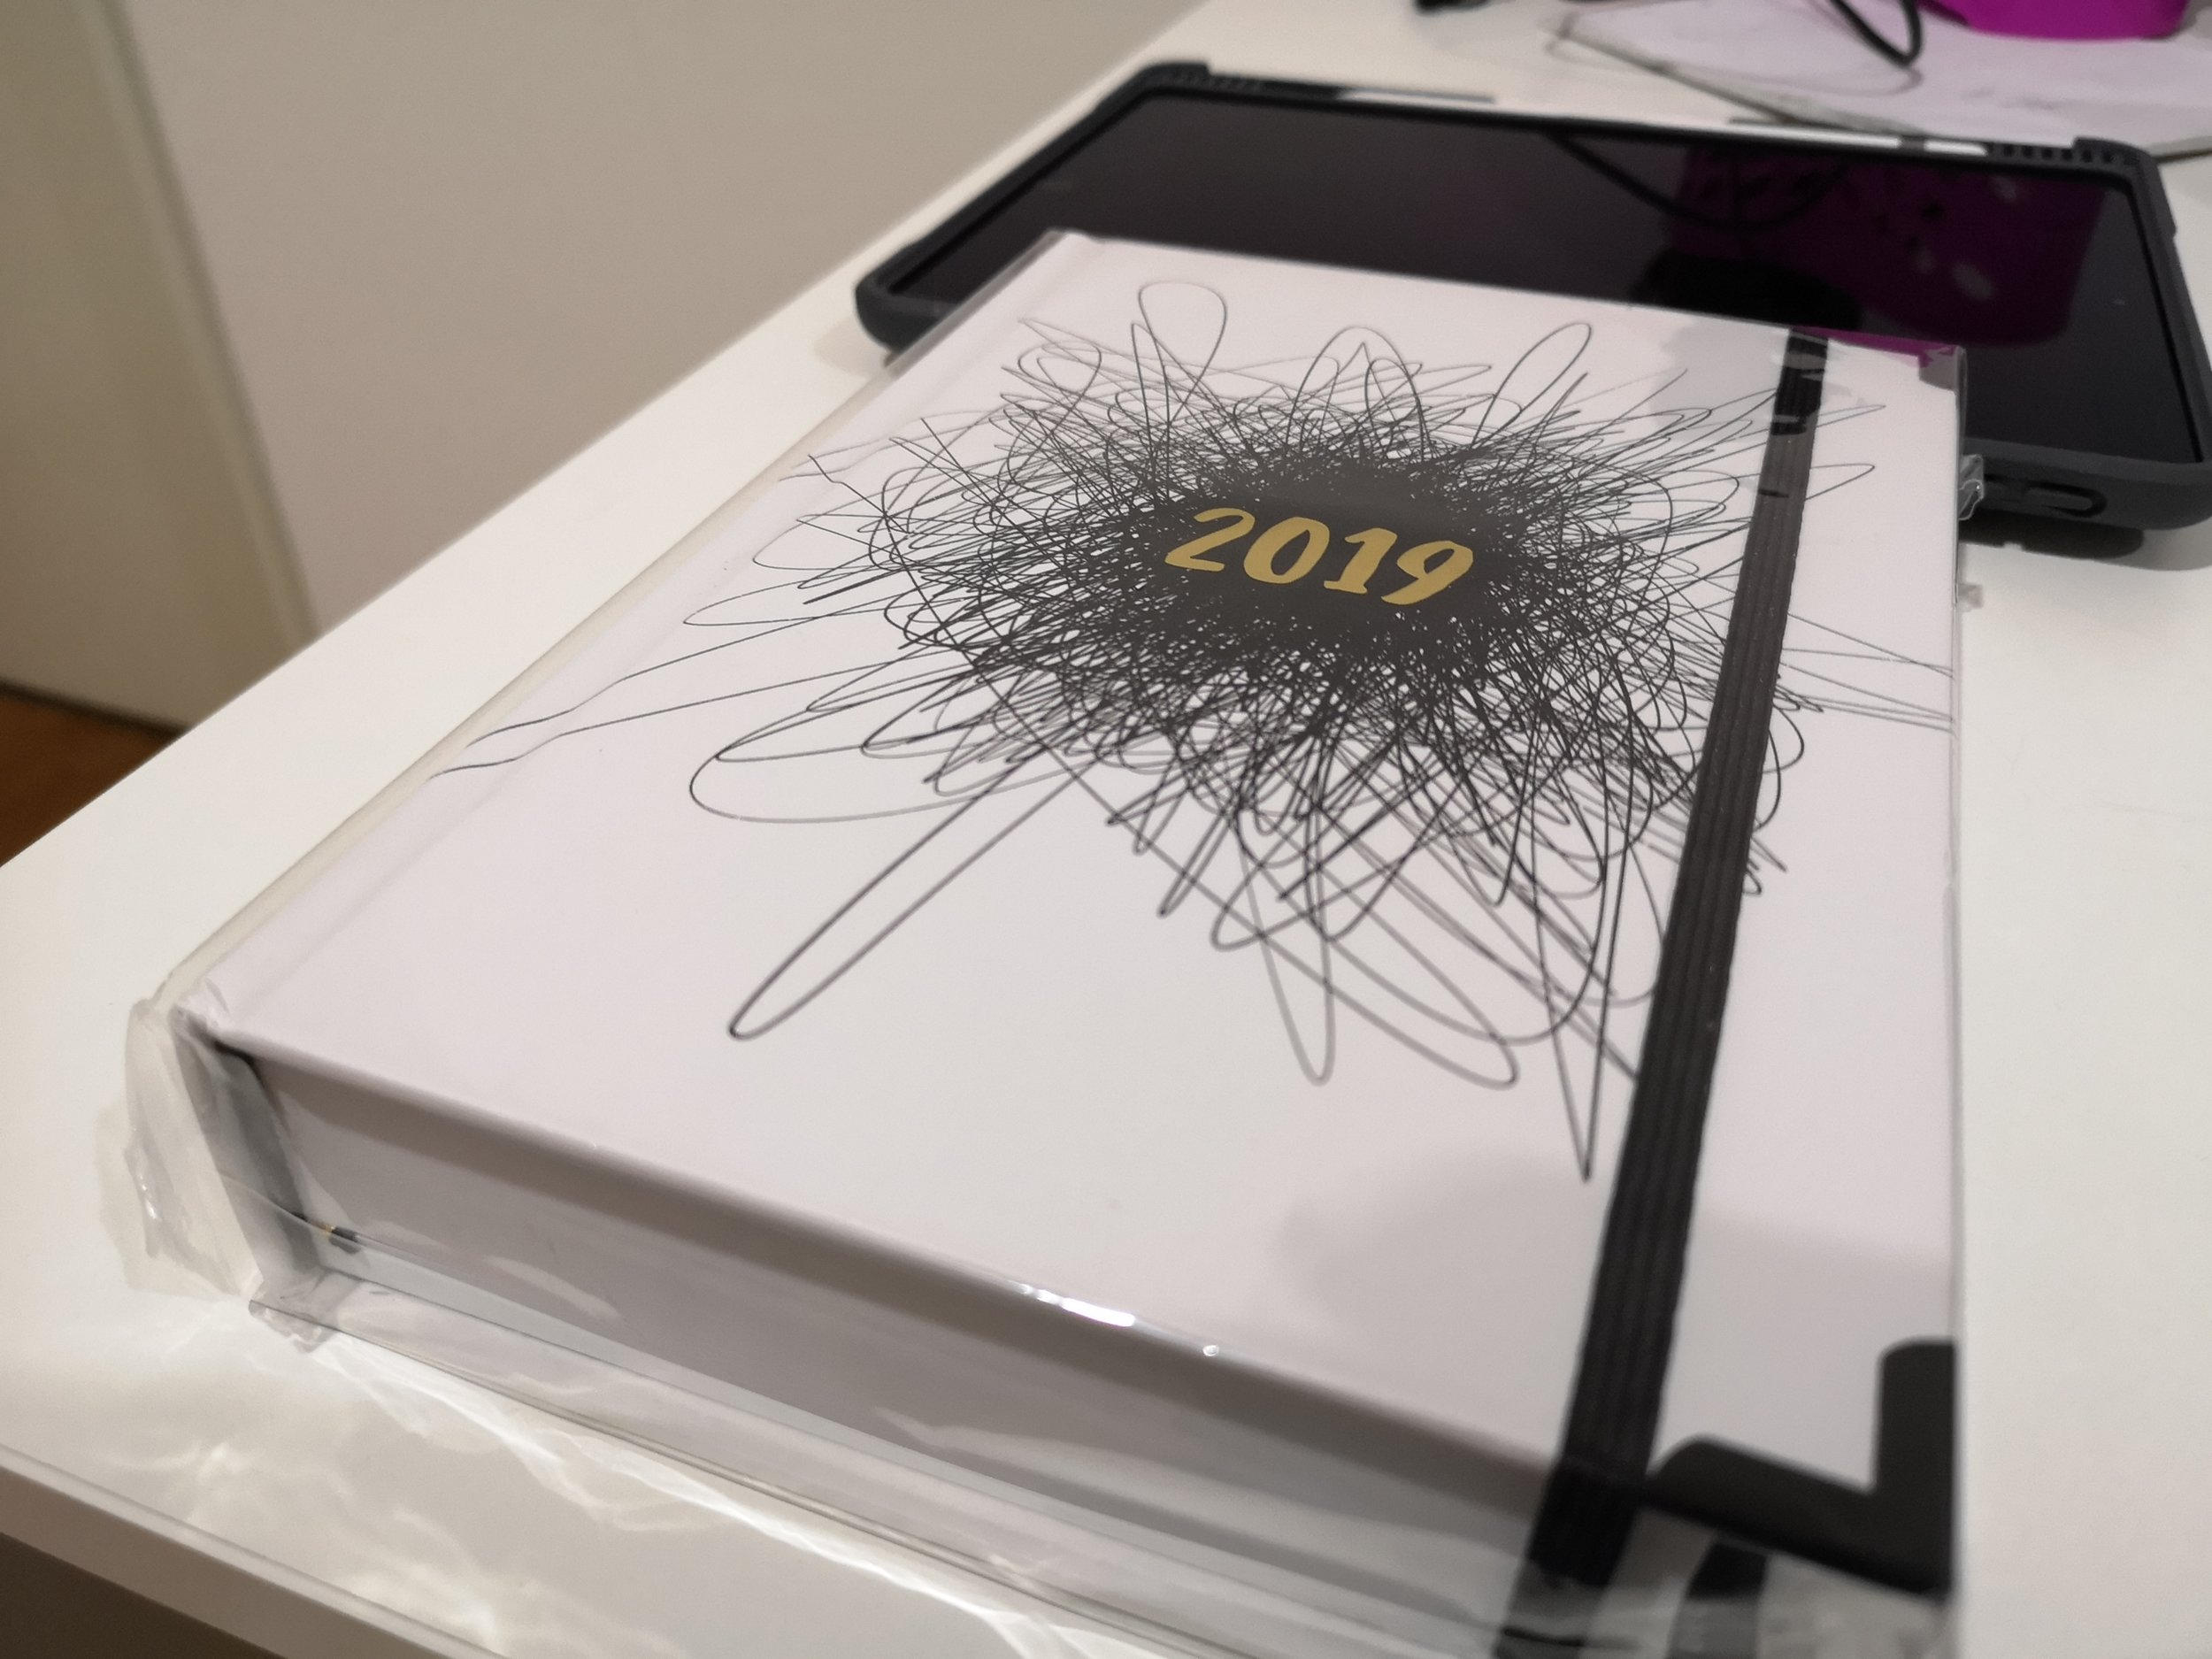 Imperfect Life Planner 2019 by Kerry Lyon